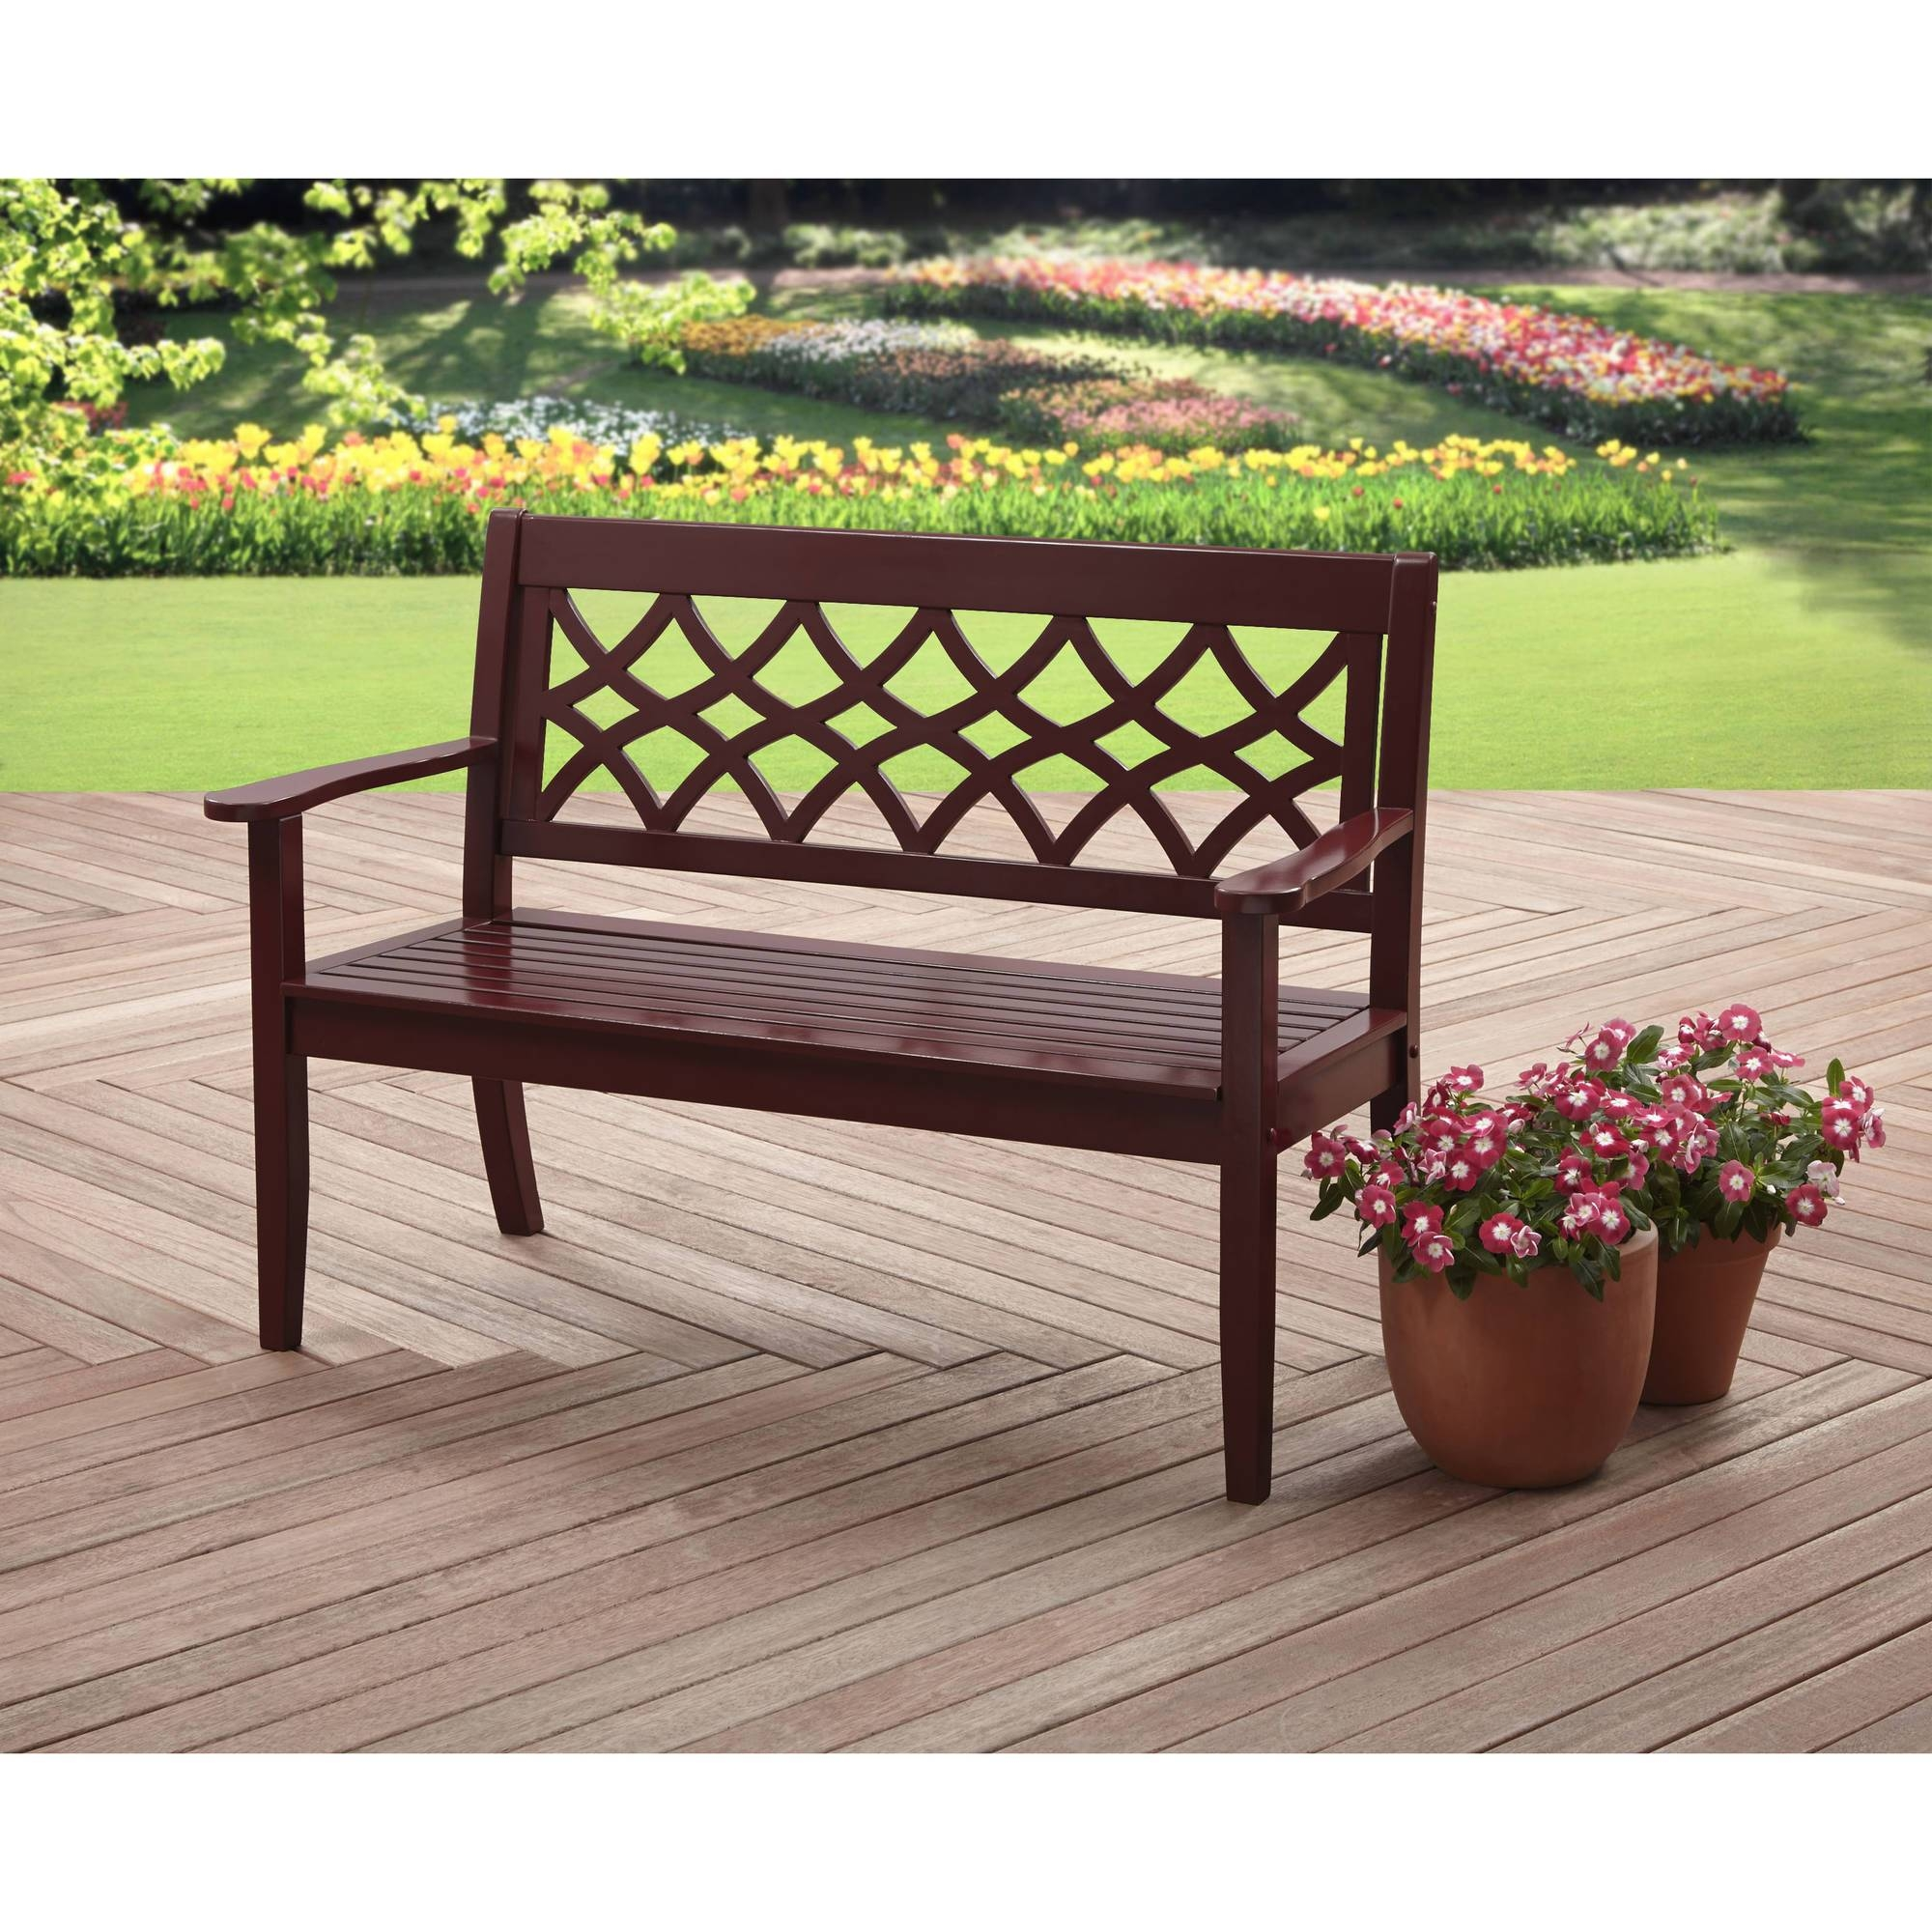 Patio Furniture - Walmart with regard to Outdoor Sofa Chairs (Image 24 of 30)